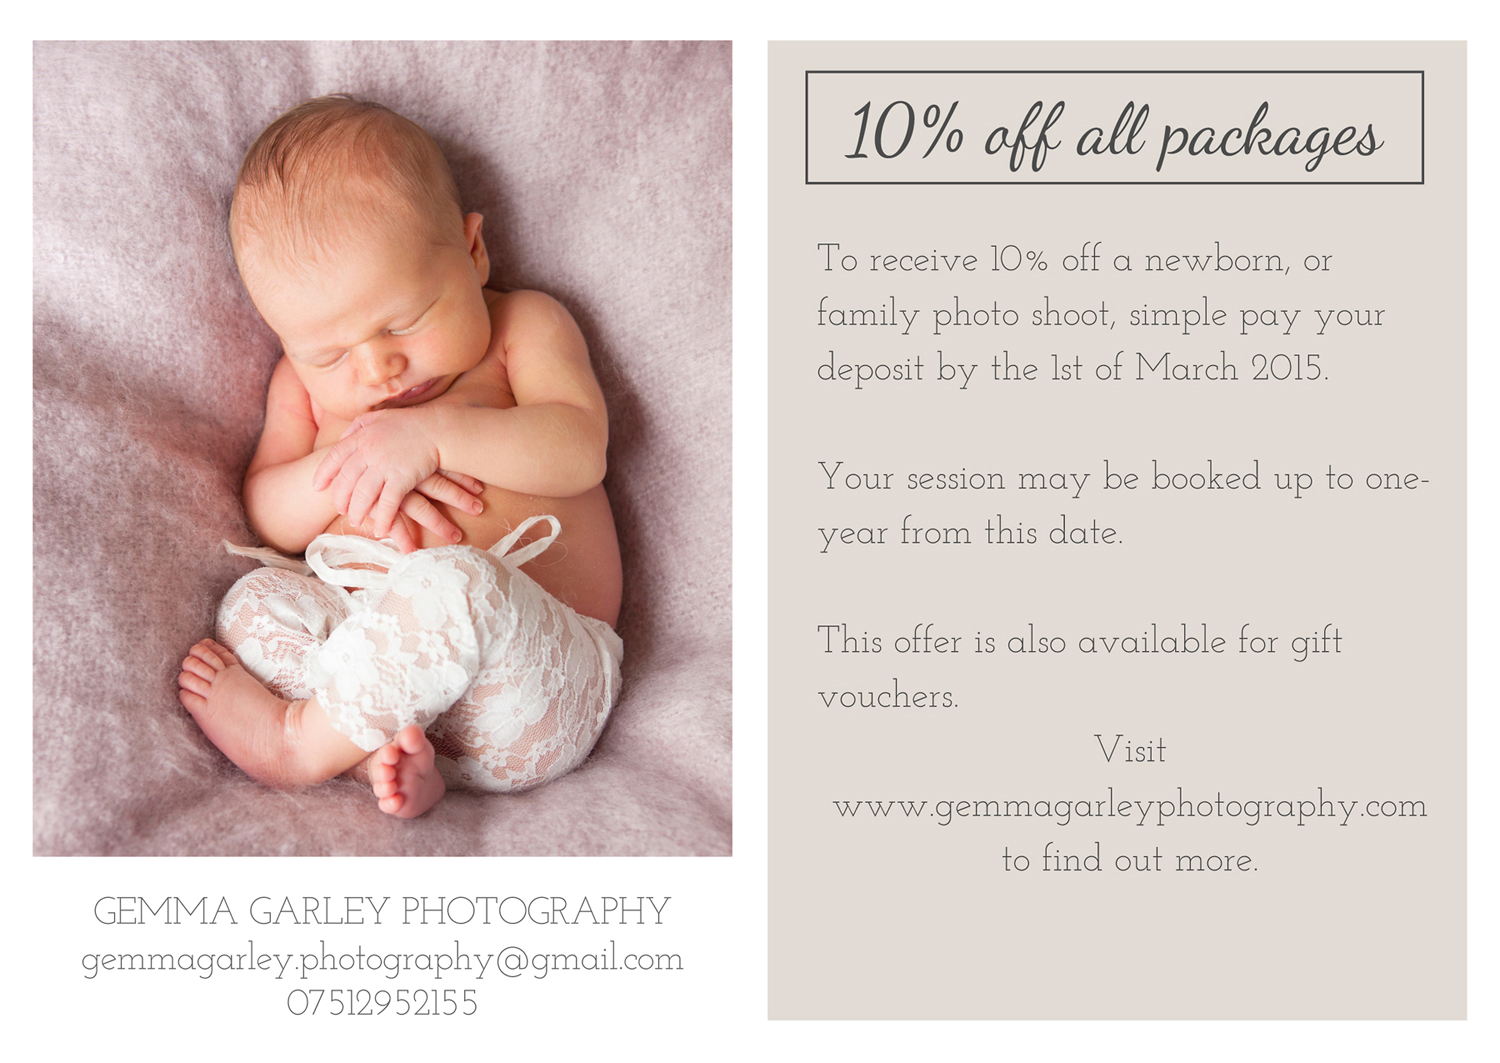 10% off family and newborn photo shoots